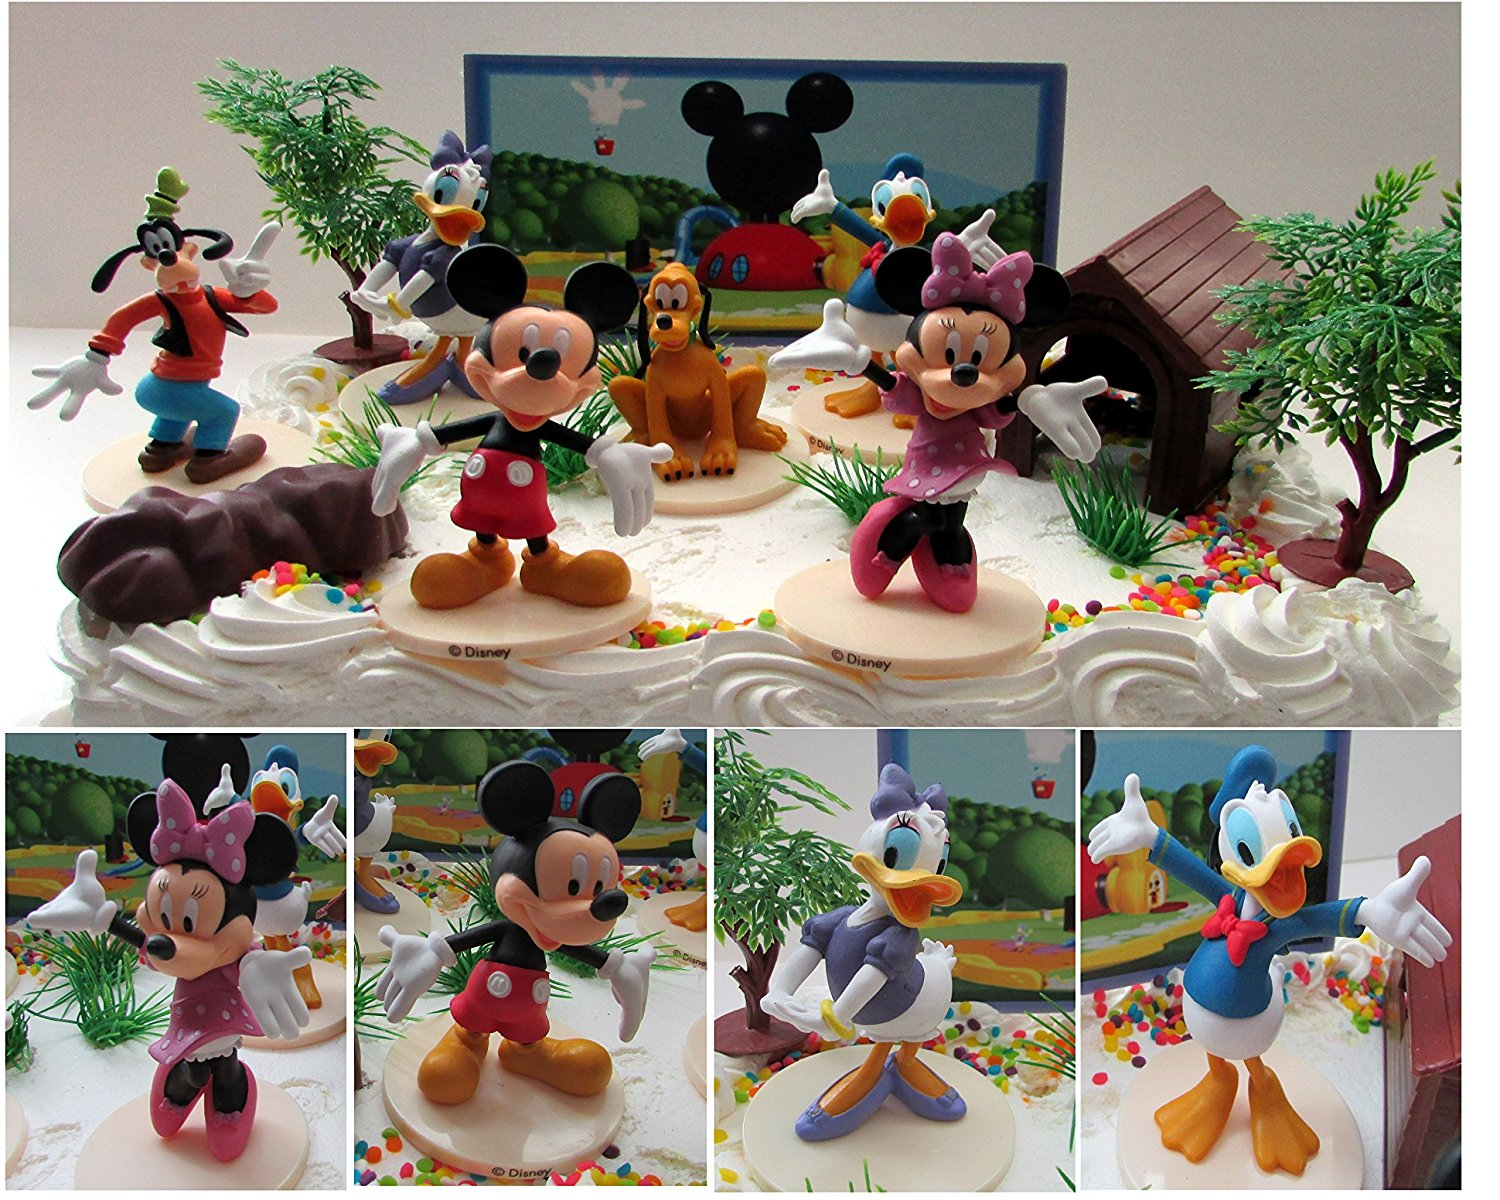 Tremendous Mickey Mouse Clubhouse Birthday Cake Topper Featuring Mickey Mouse Personalised Birthday Cards Paralily Jamesorg